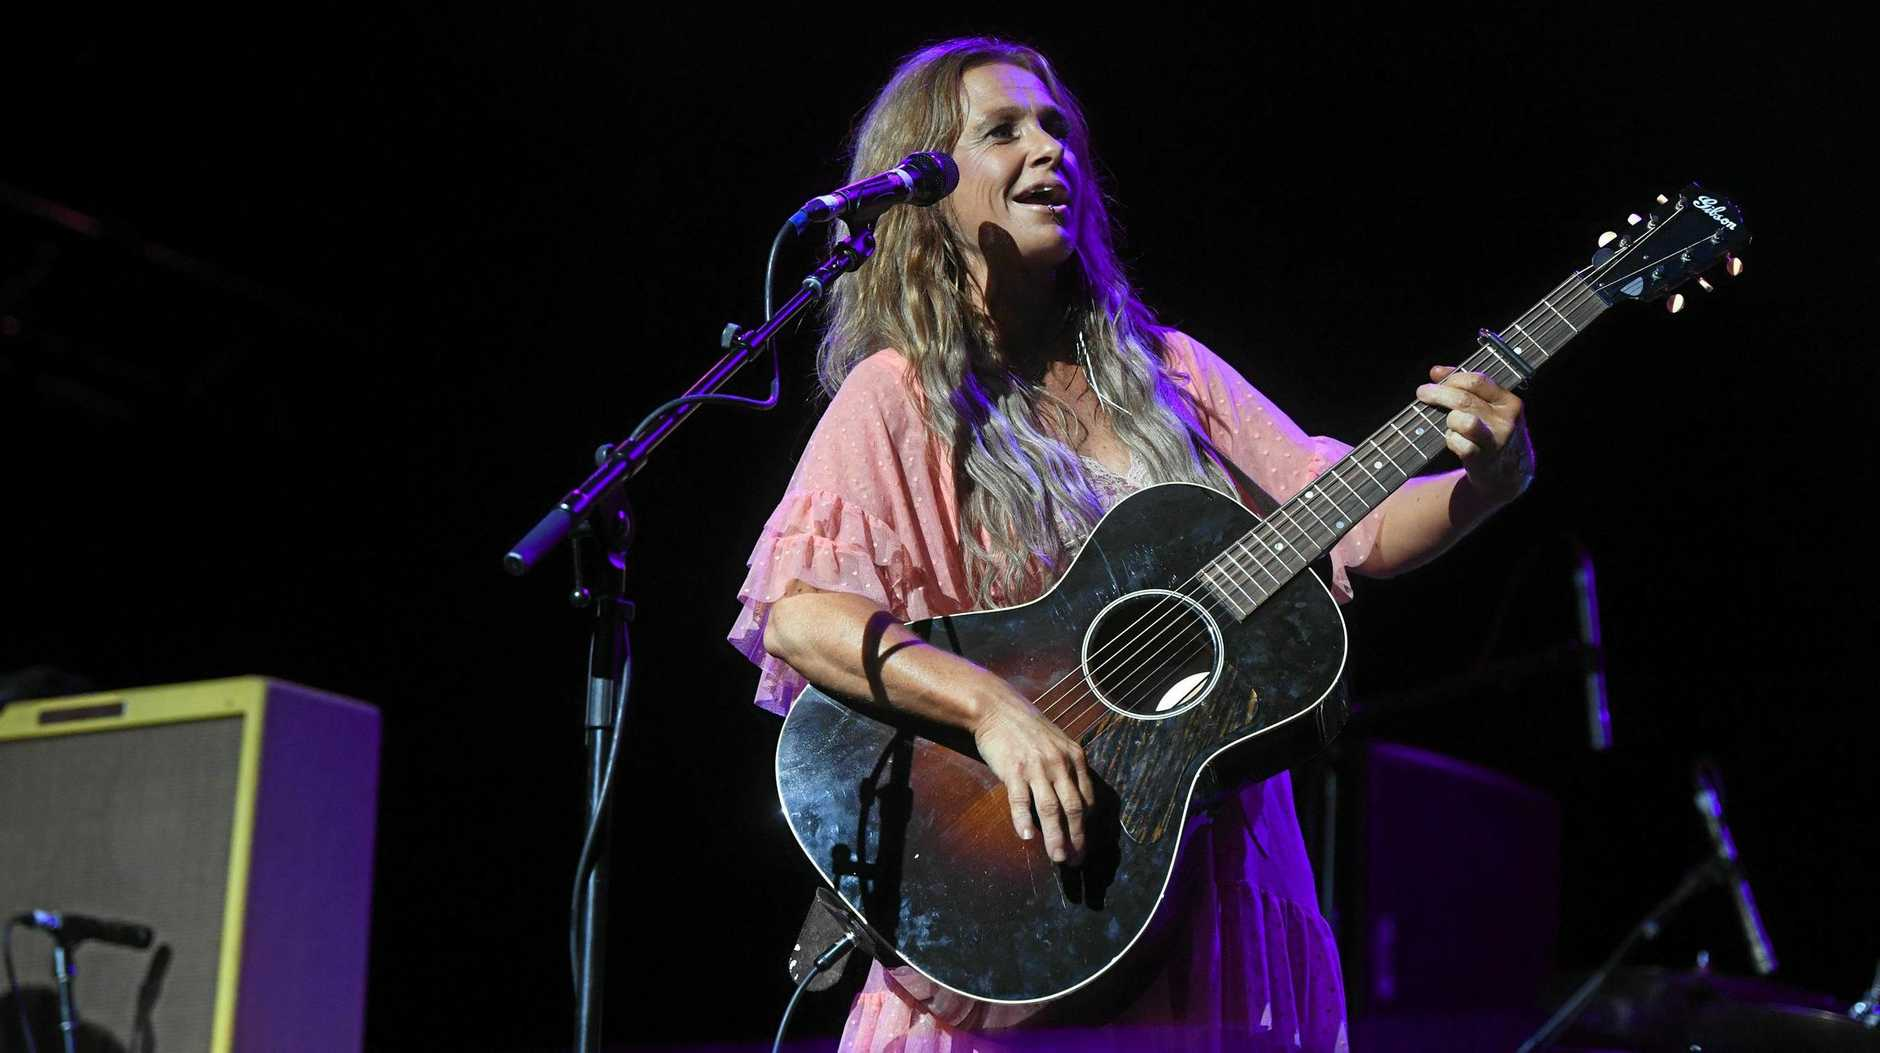 HALL OF FAMEl Kasey Chambers performs on the Crossroads stage on the third day of Bluesfest Byron Bay 2019.